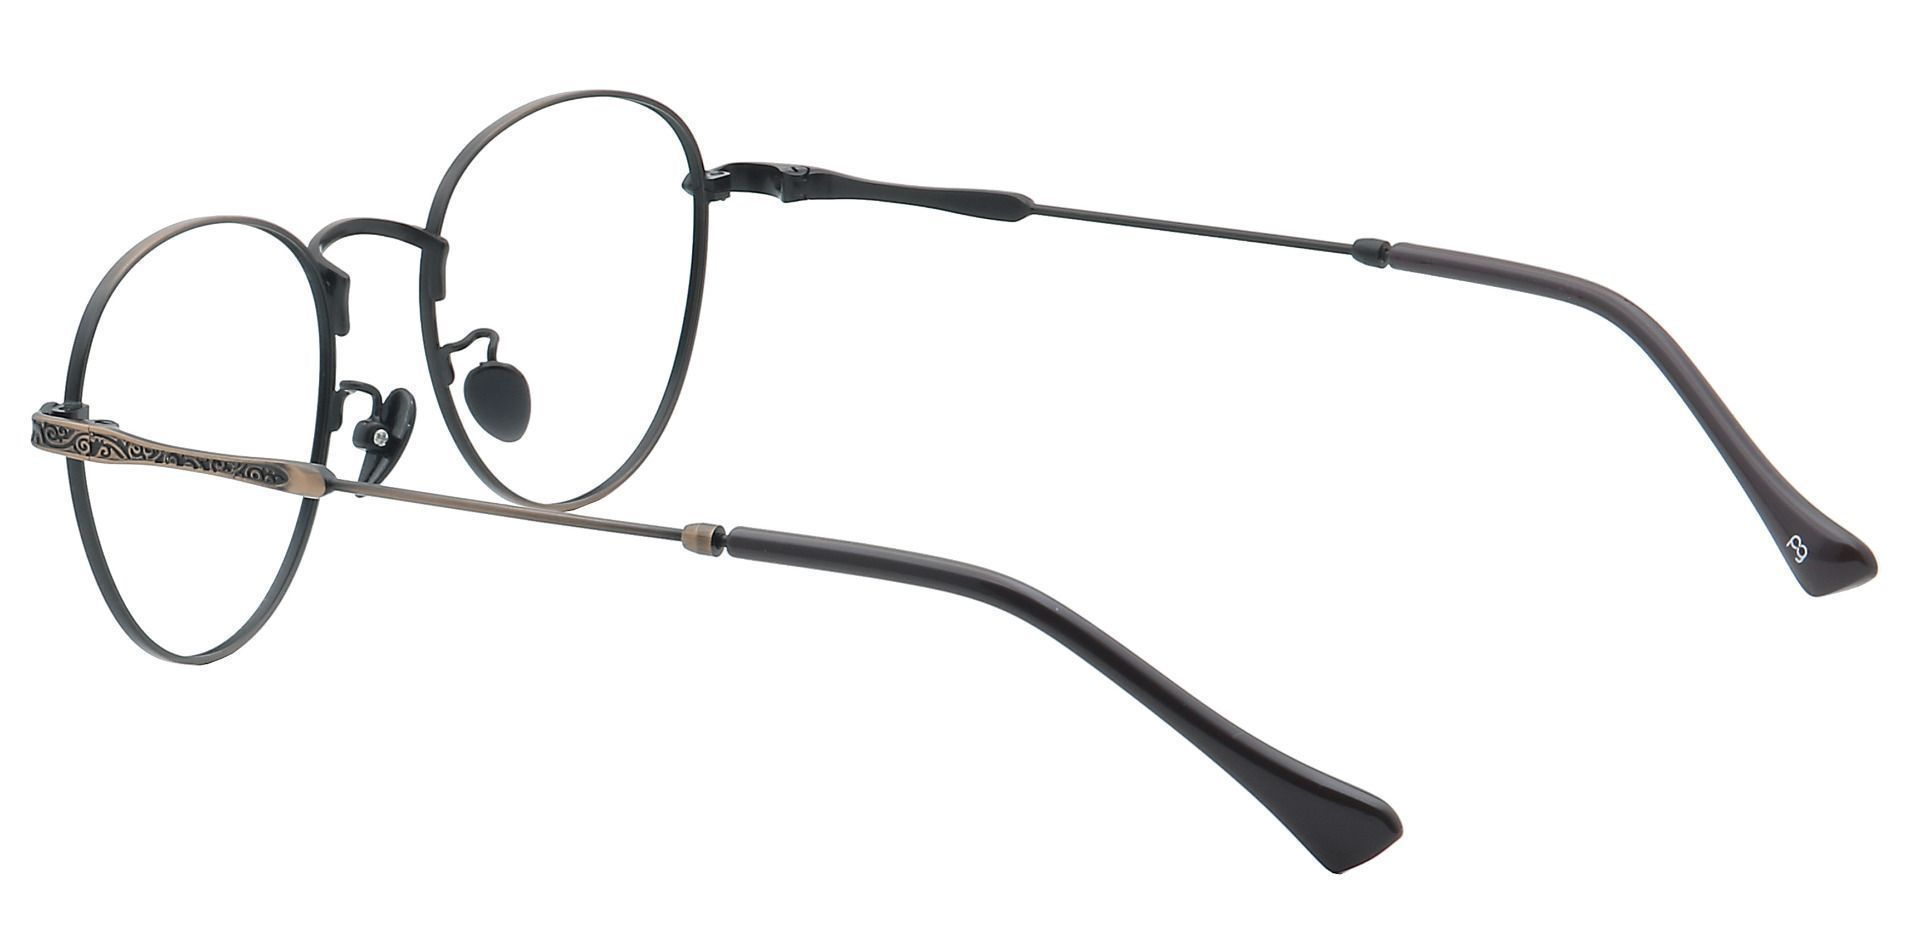 Shawn Oval Progressive Glasses - Brown